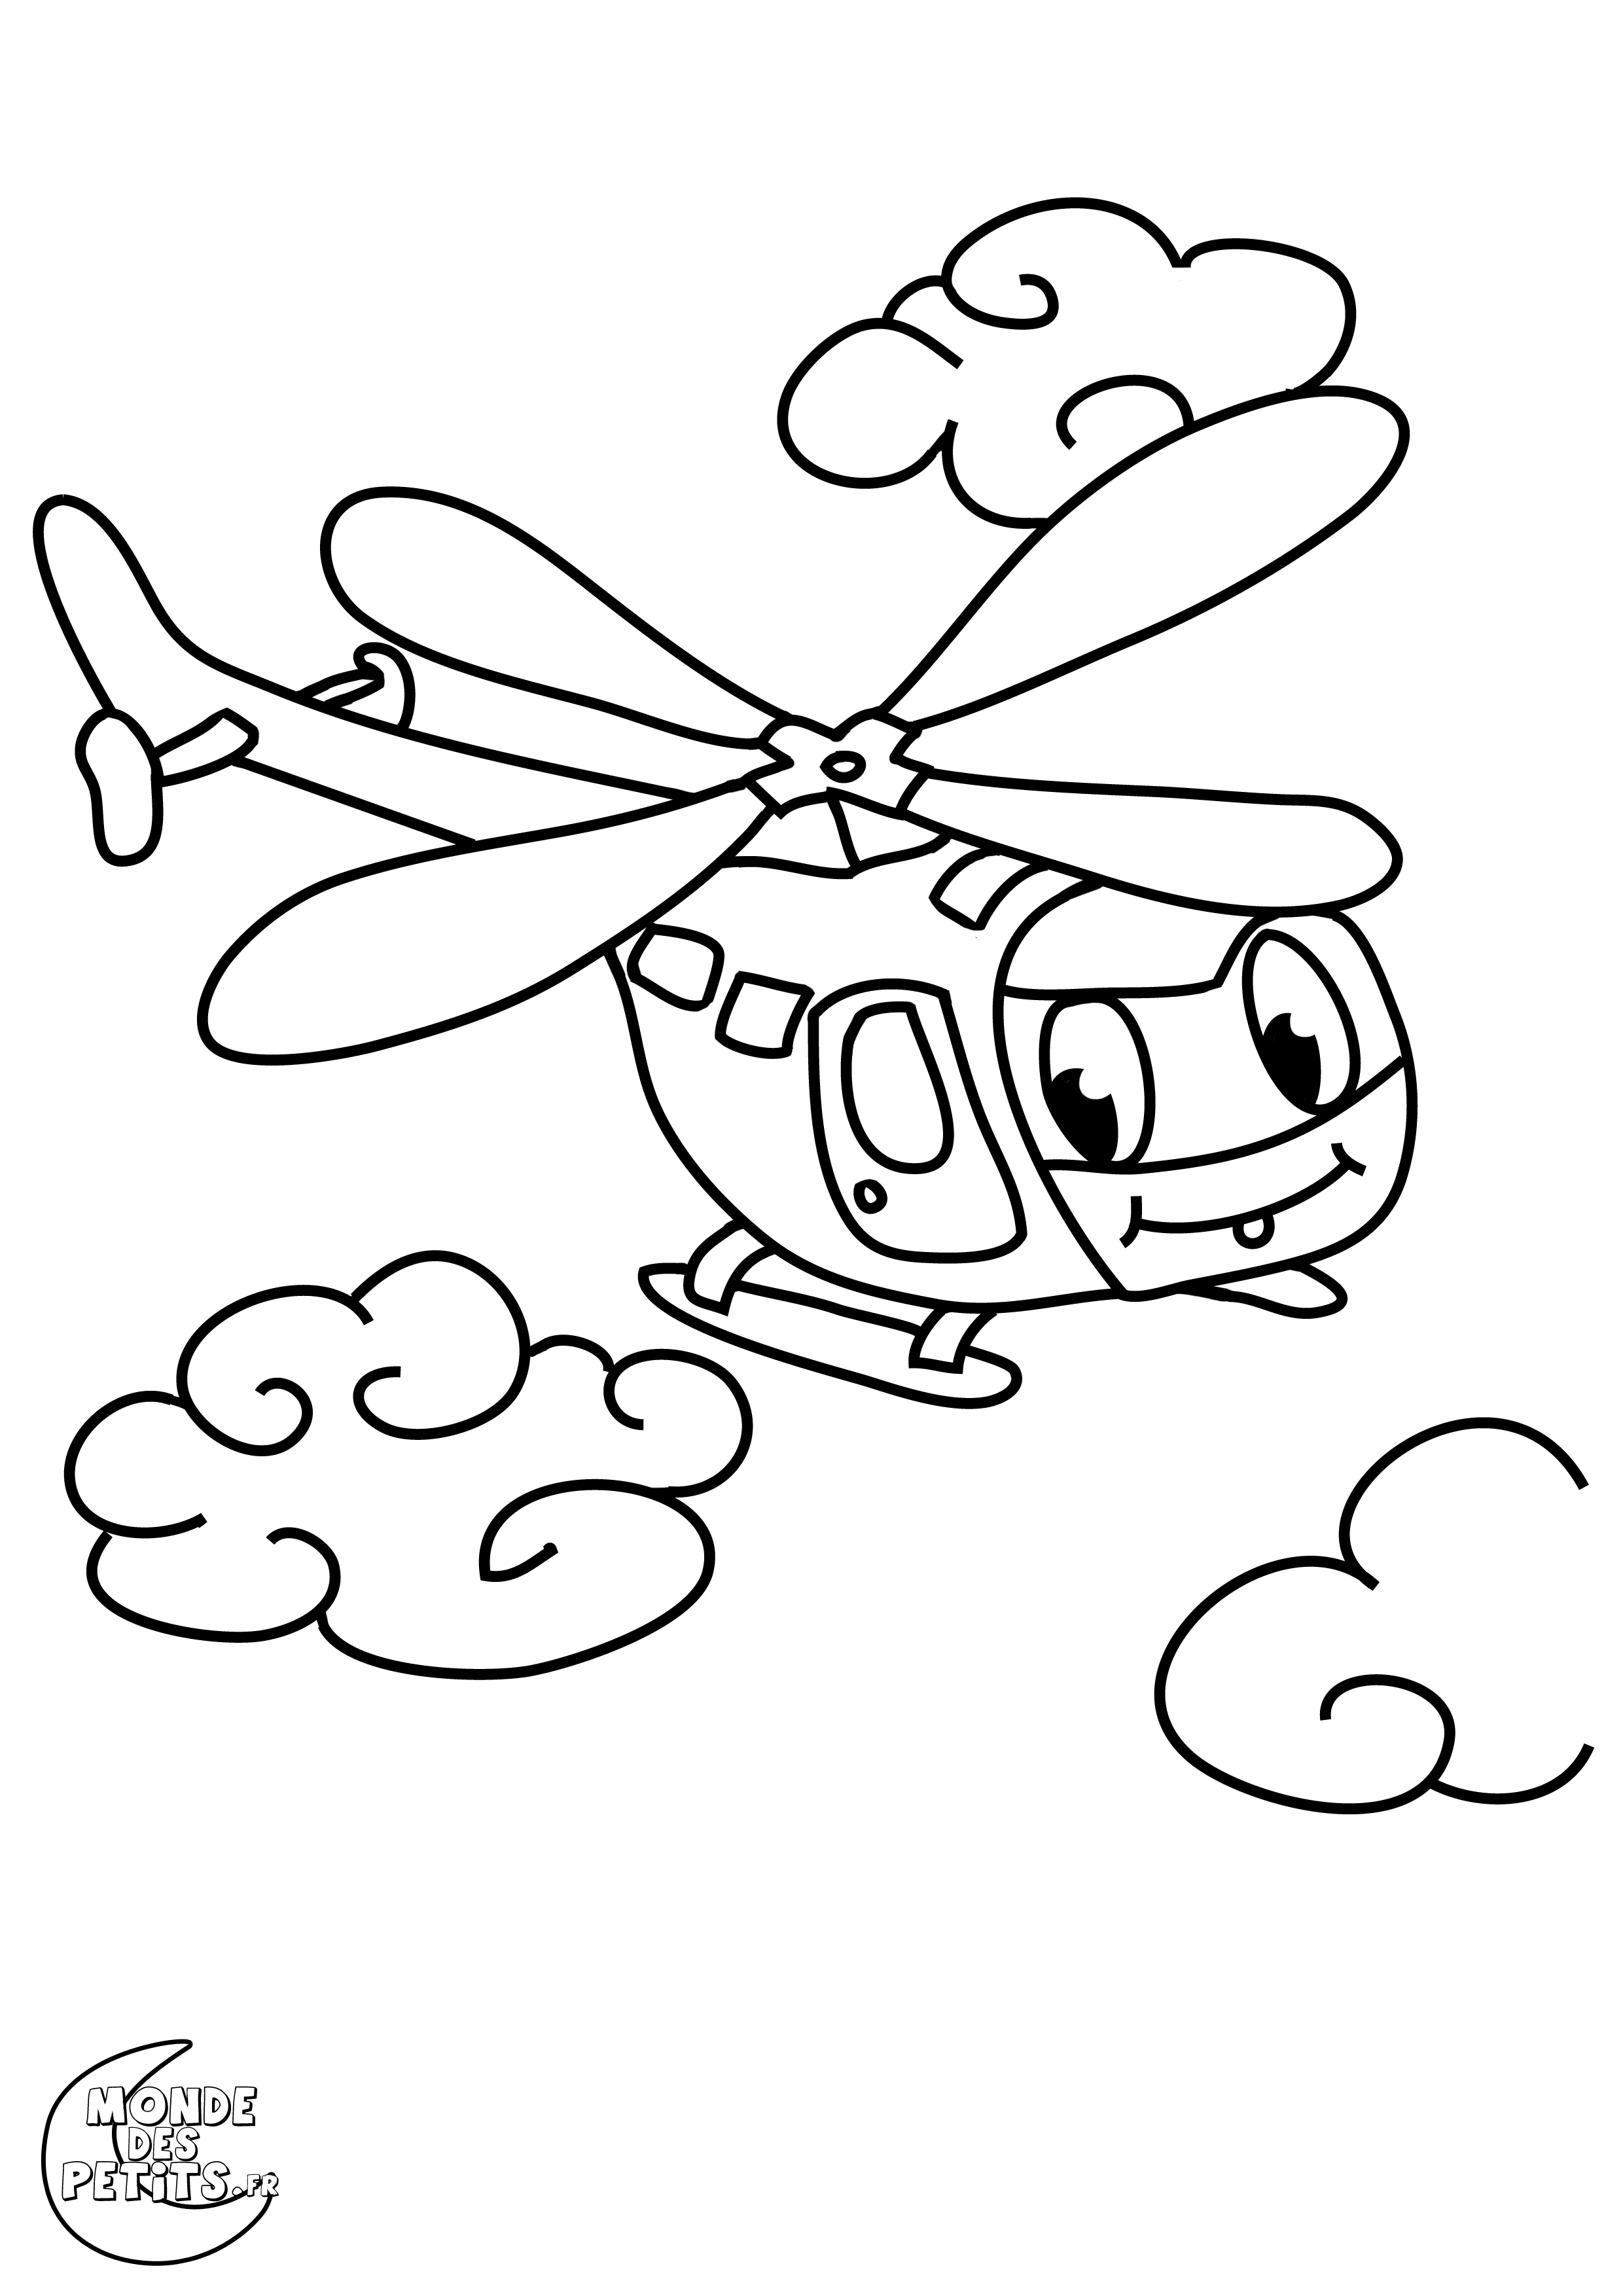 Image a colorier helicoptere - Helicoptere dessin ...